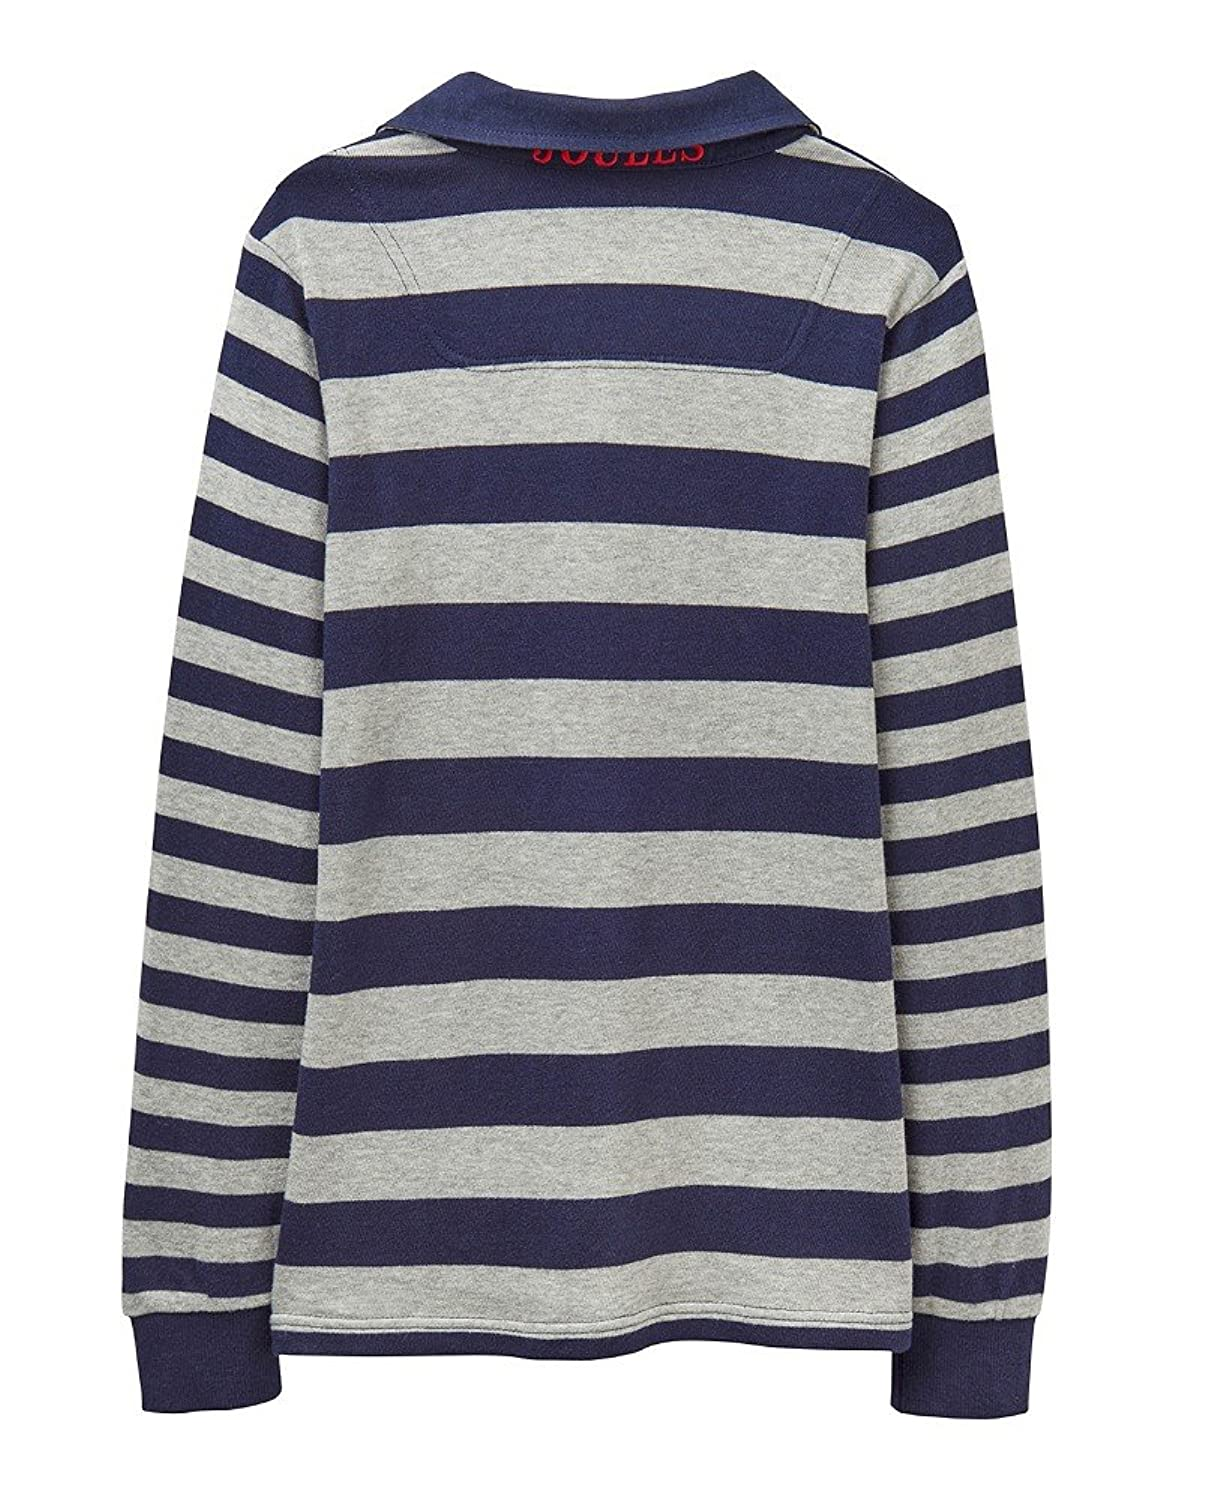 Joules Boys Arnie French Navy Striped Rugby Shirt (Top/Jersey):  Amazon.co.uk: Clothing